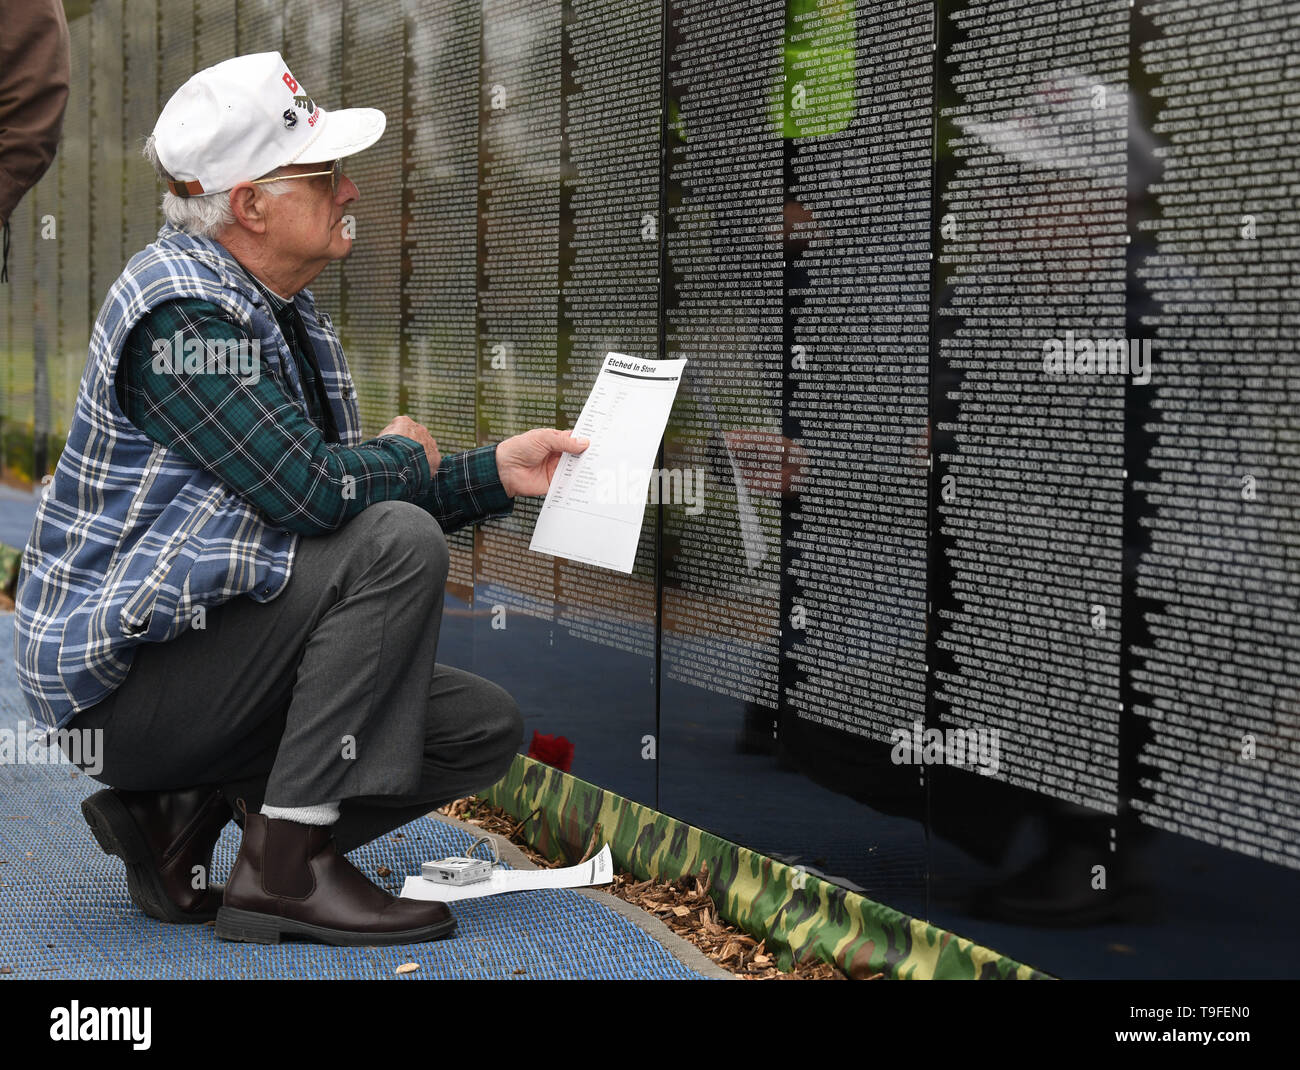 Racine, Wisconsin, USA. 18th May, 2019. Andris Vinakmens looks for the names of his high school classmates Ed Wyatt and Tony Albasio at the Moving Wall, a half-size replica of the Vietnam Veterans Memorial, in Racine, Wisconsin, Saturday May 18, 2019. The three served on B-52 bombers. Forty-seven soldiers from Racine were killed during the war. The Moving Wall has been touring the United States for more than 30 years. Credit: Mark Hertzberg/ZUMA Wire/Alamy Live News - Stock Image